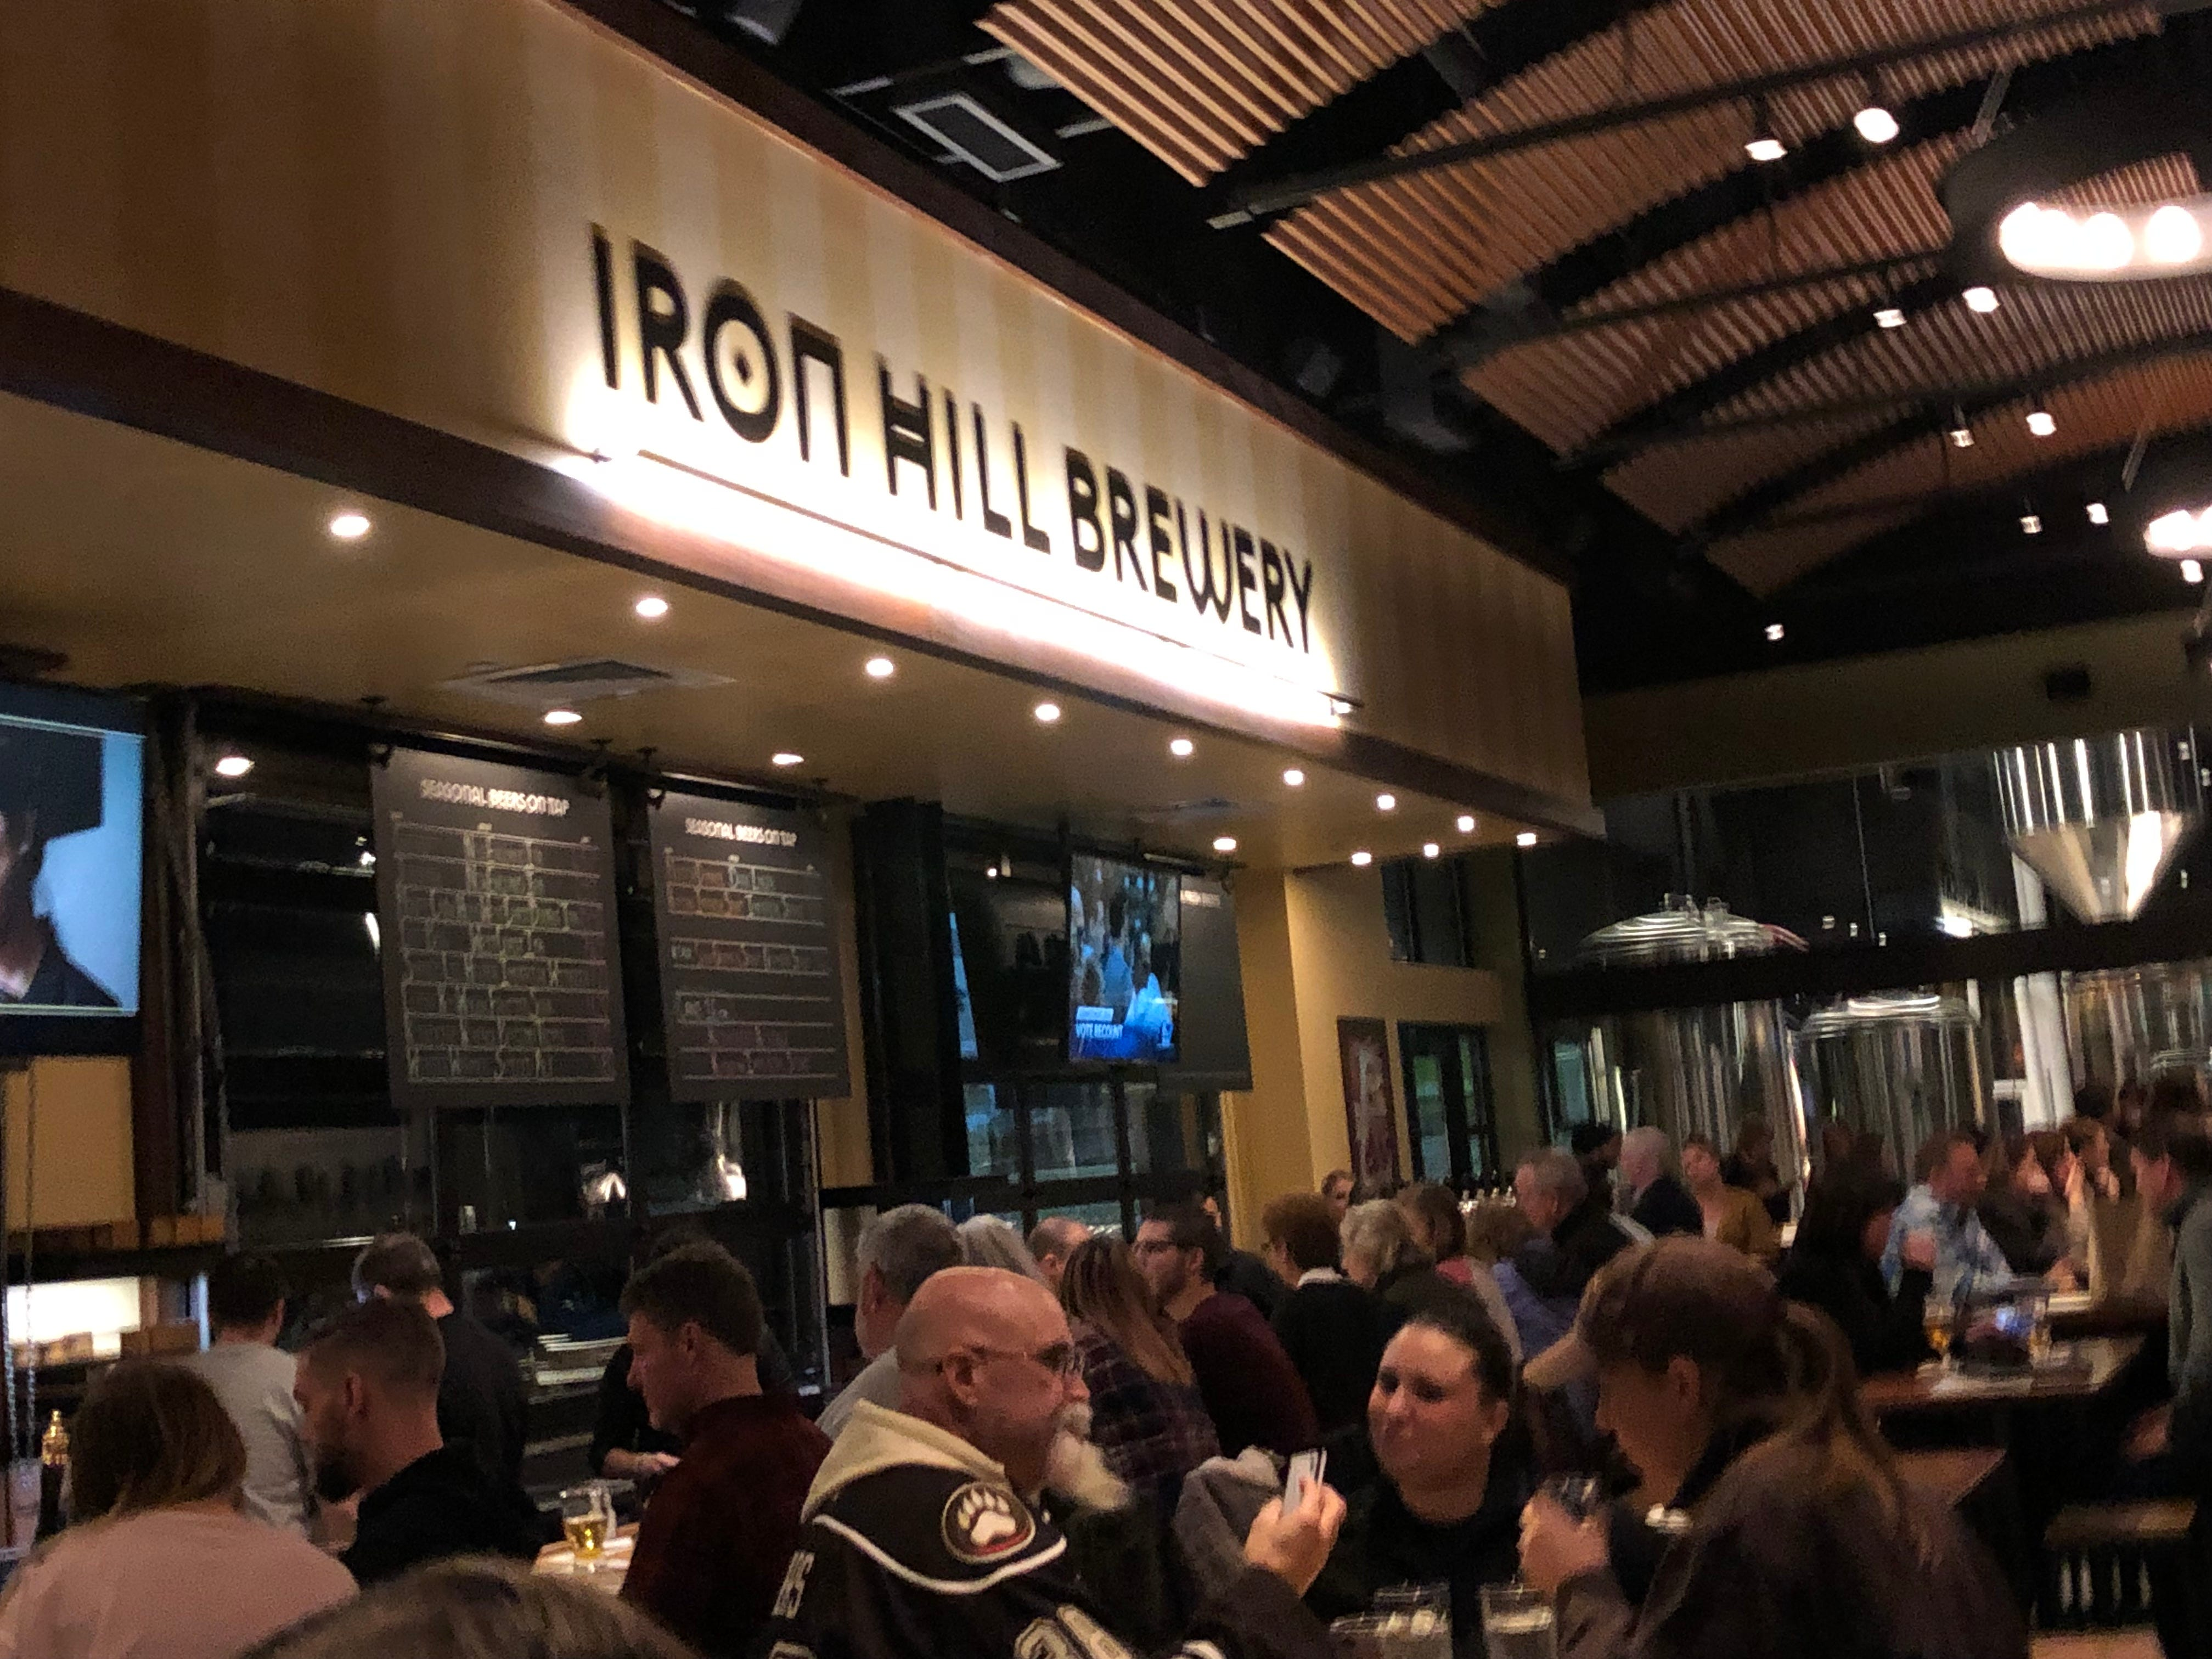 A packed house for Iron Hill Brewery & Restaurant's soft opening.